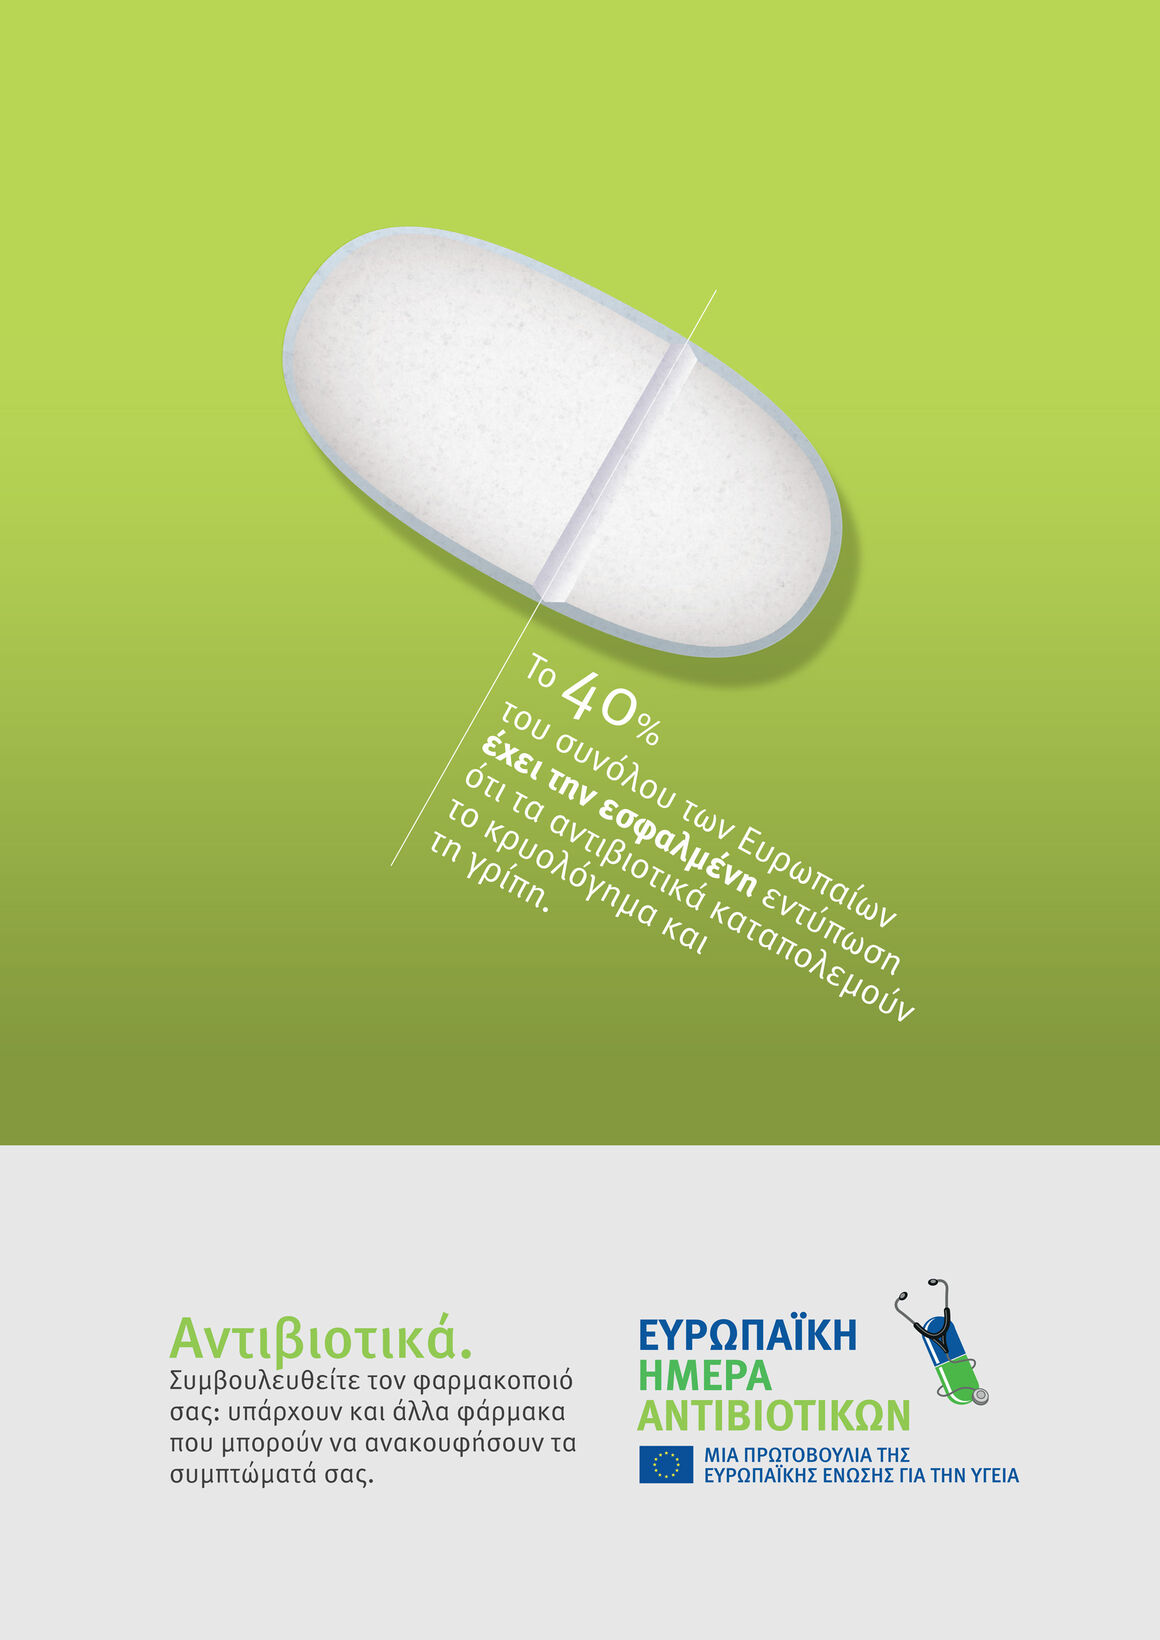 antibiotics-self-medication-pills-poster-general-public